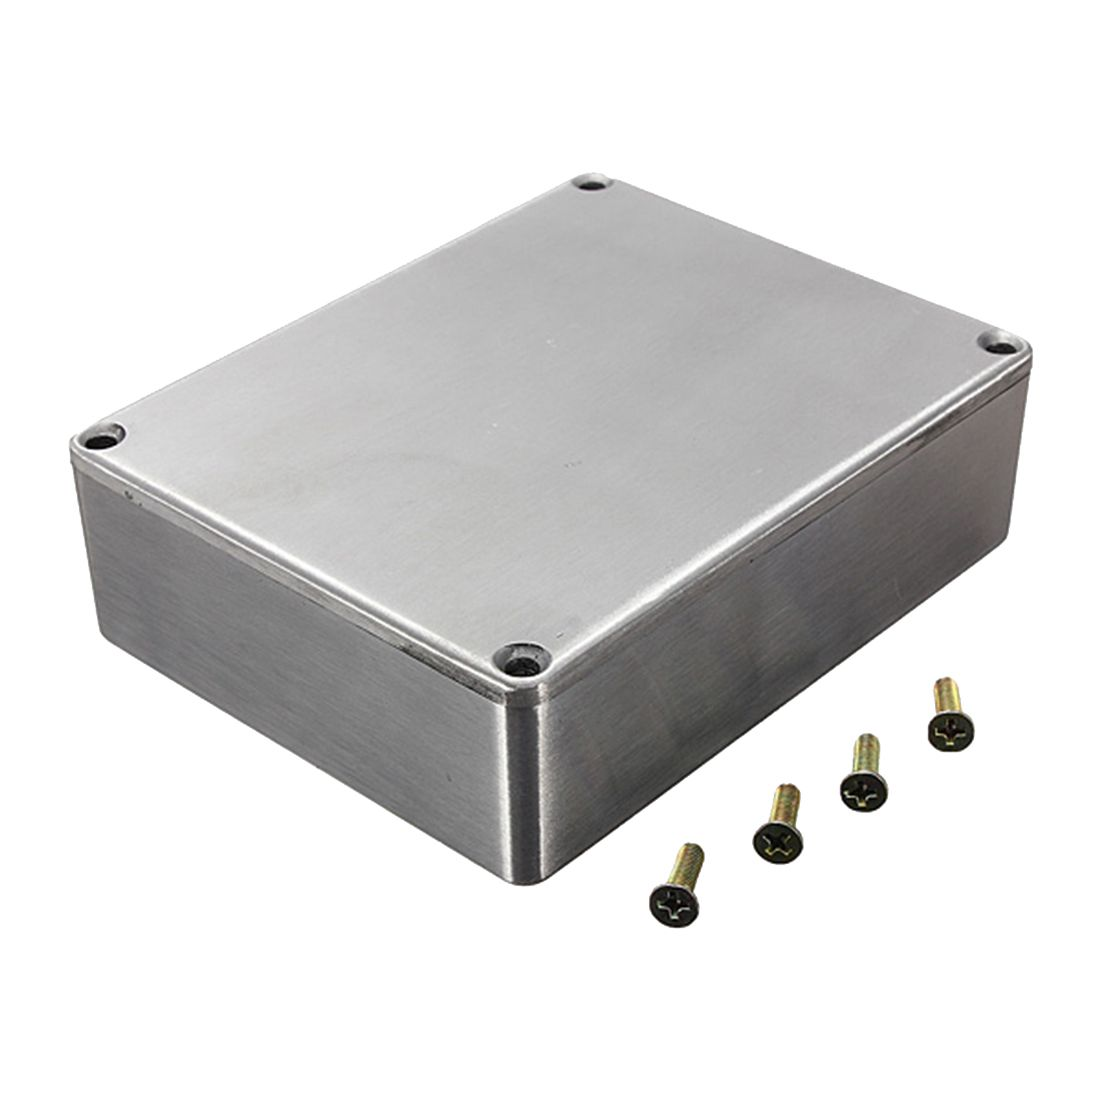 SALES 5x1590BB Guitar Effects Box Container Aluminum 120x95x35mm Silver аккумулятор patriot 12v 1 5 ah bb gsr ni